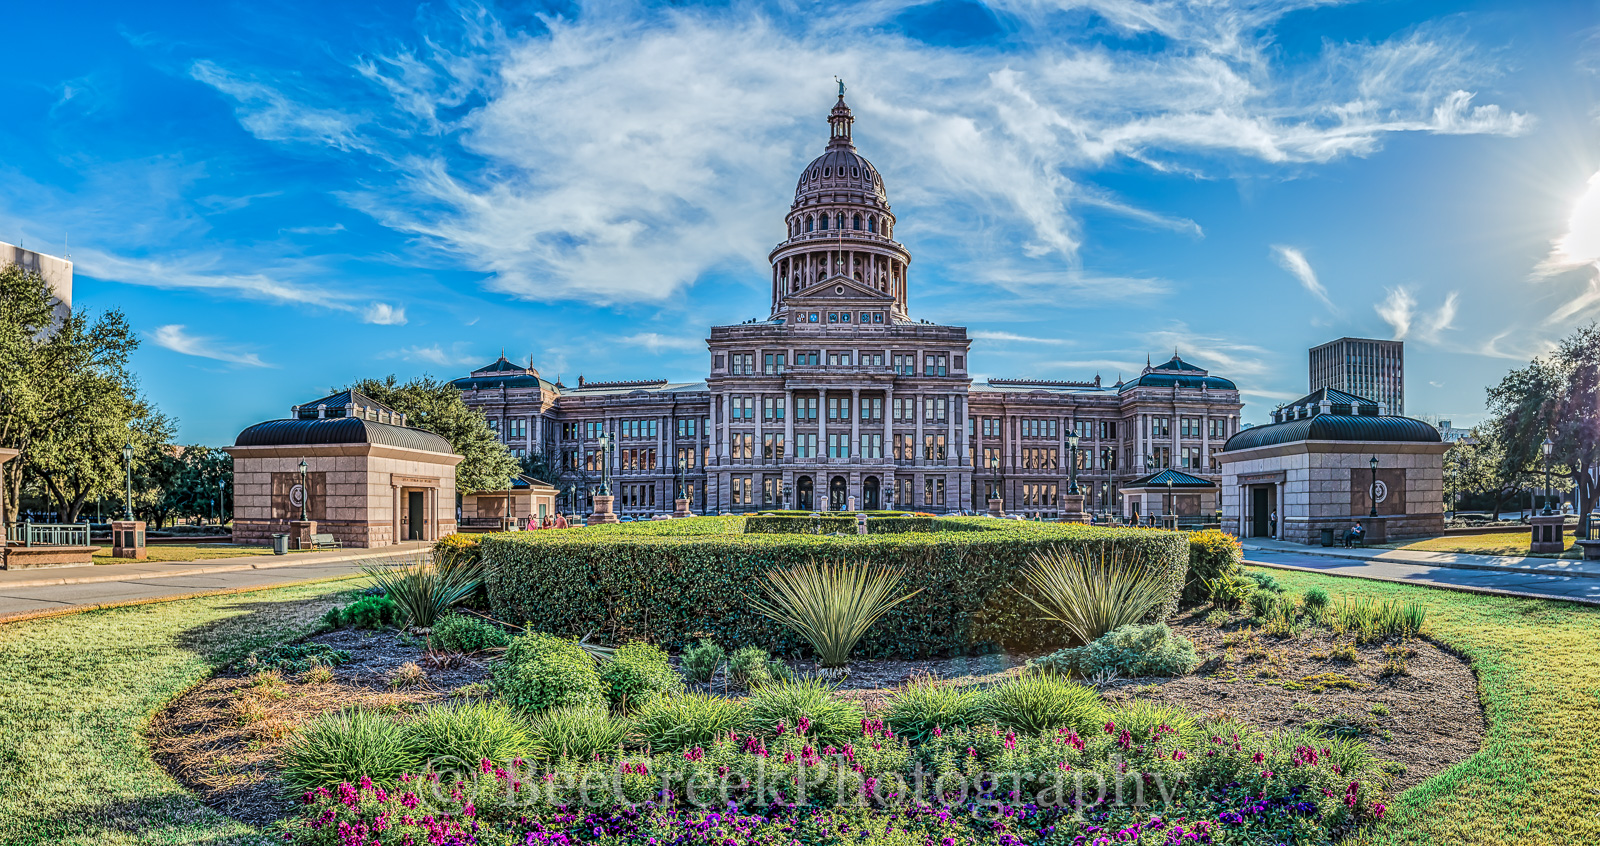 State Capitol Pano - Another capture of the Texas State Capitol with some nice blue sky and clouds hoovering over the dome. A...